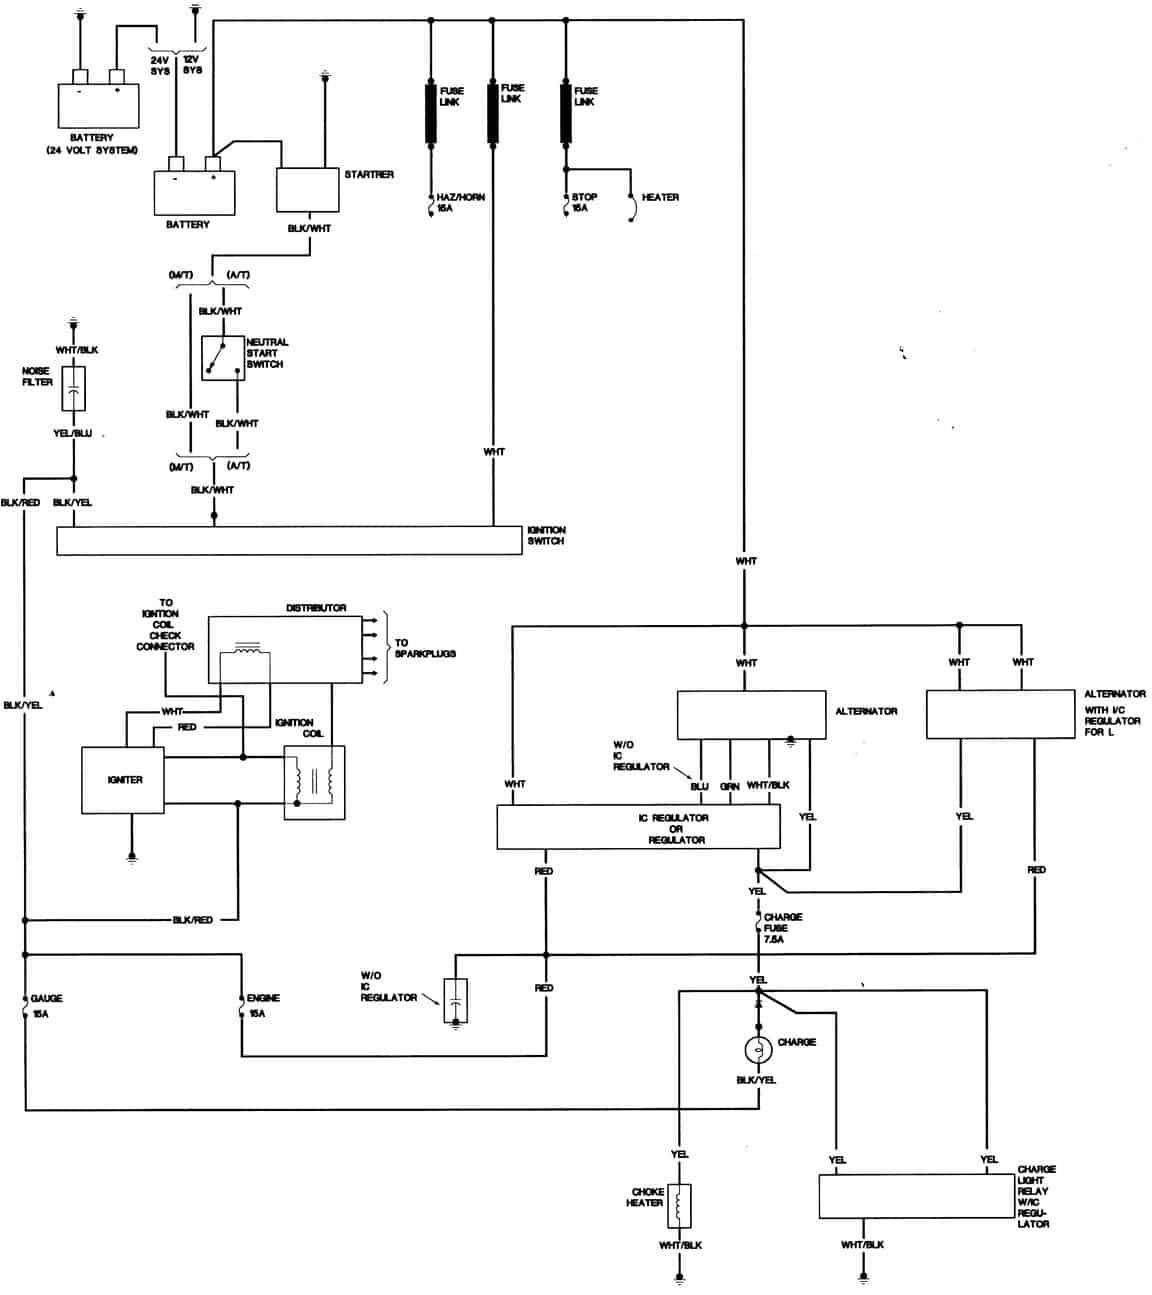 Toyota Alternator Wiring Diagram Furthermore 85 Toyota Pickup Wiring